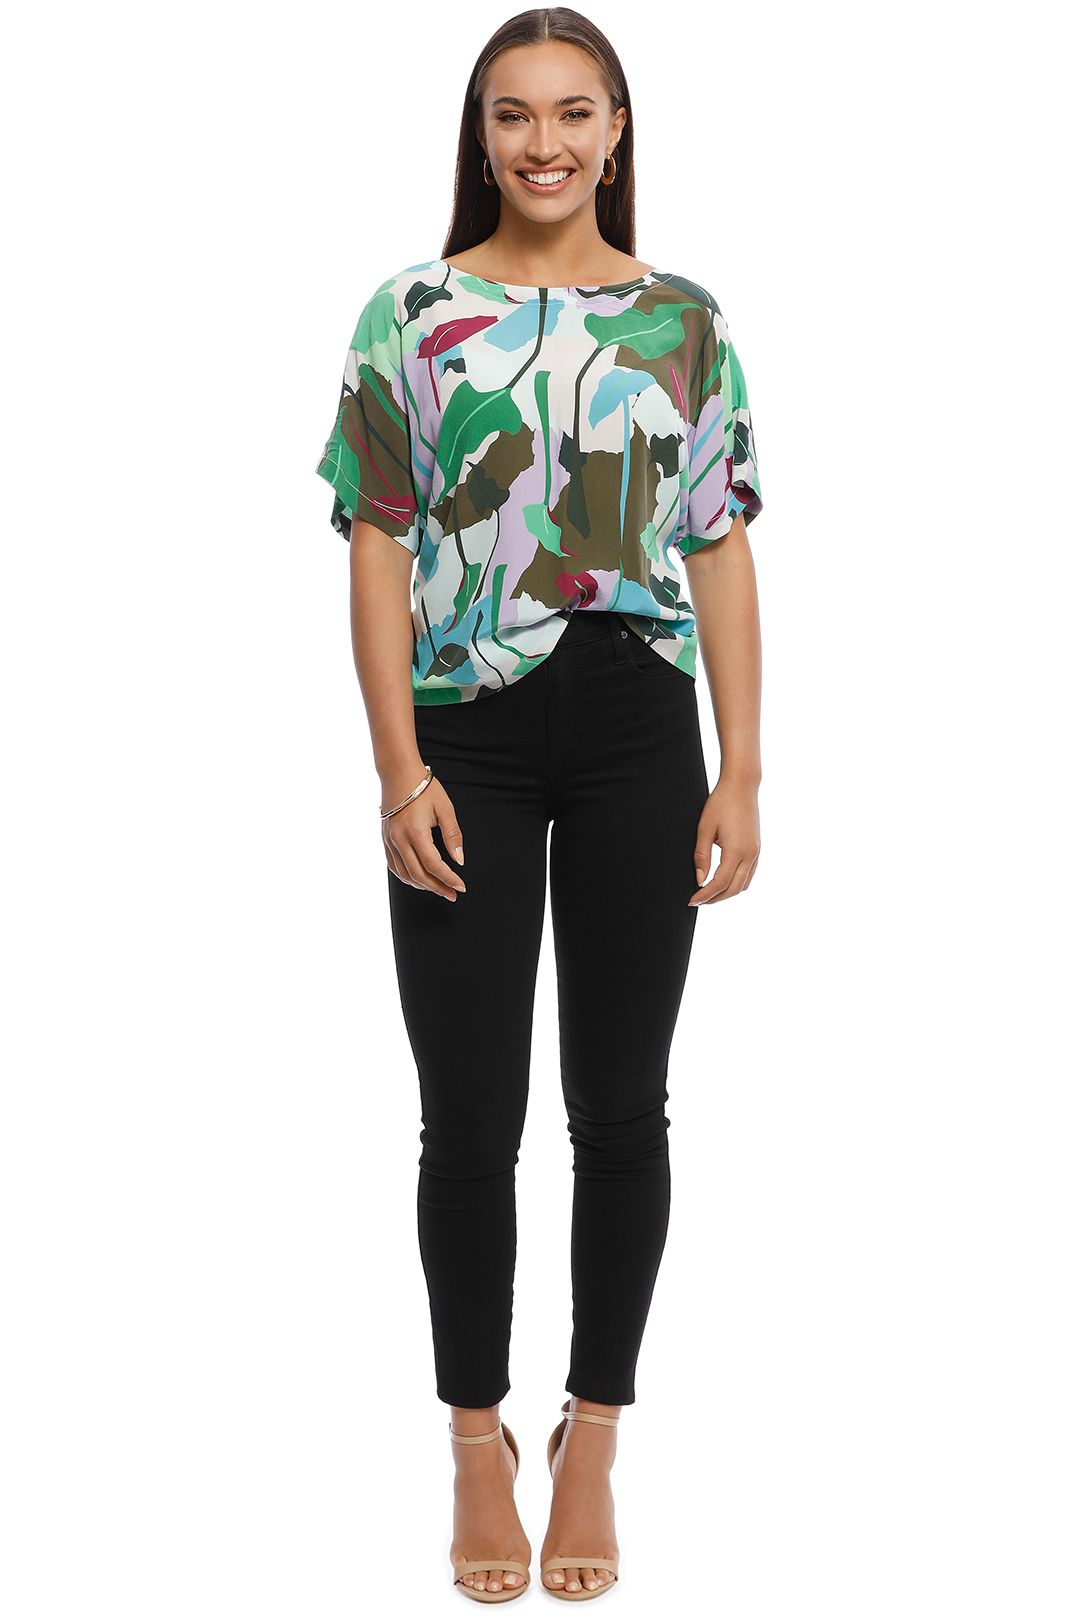 Gorman - Philodendron Silk Top - Multi - front